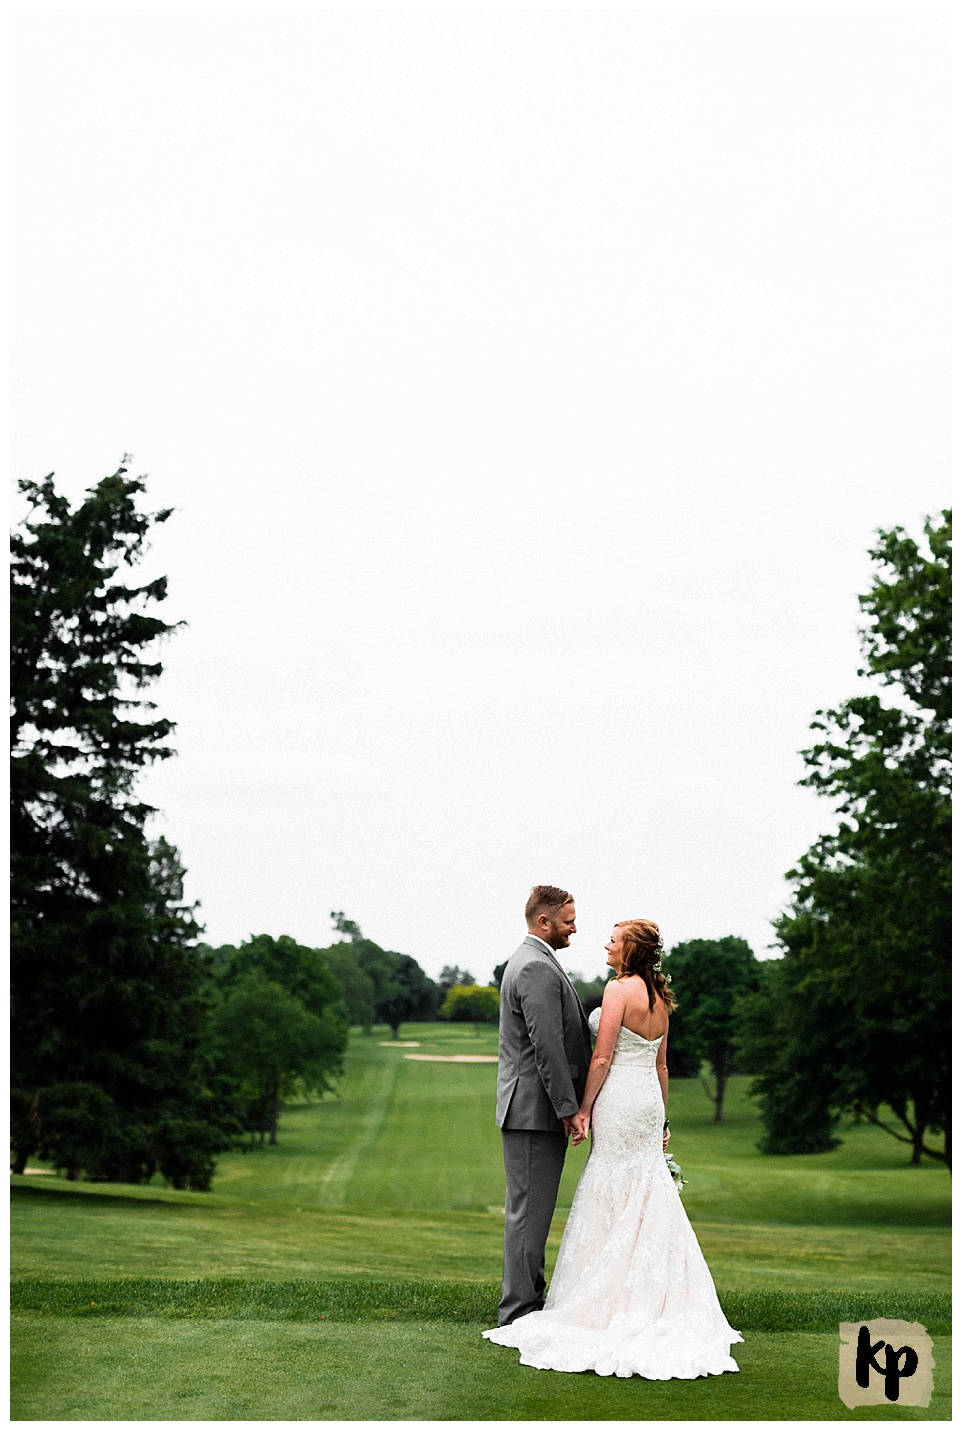 Erik + Stacey | Just Married_0572.jpg